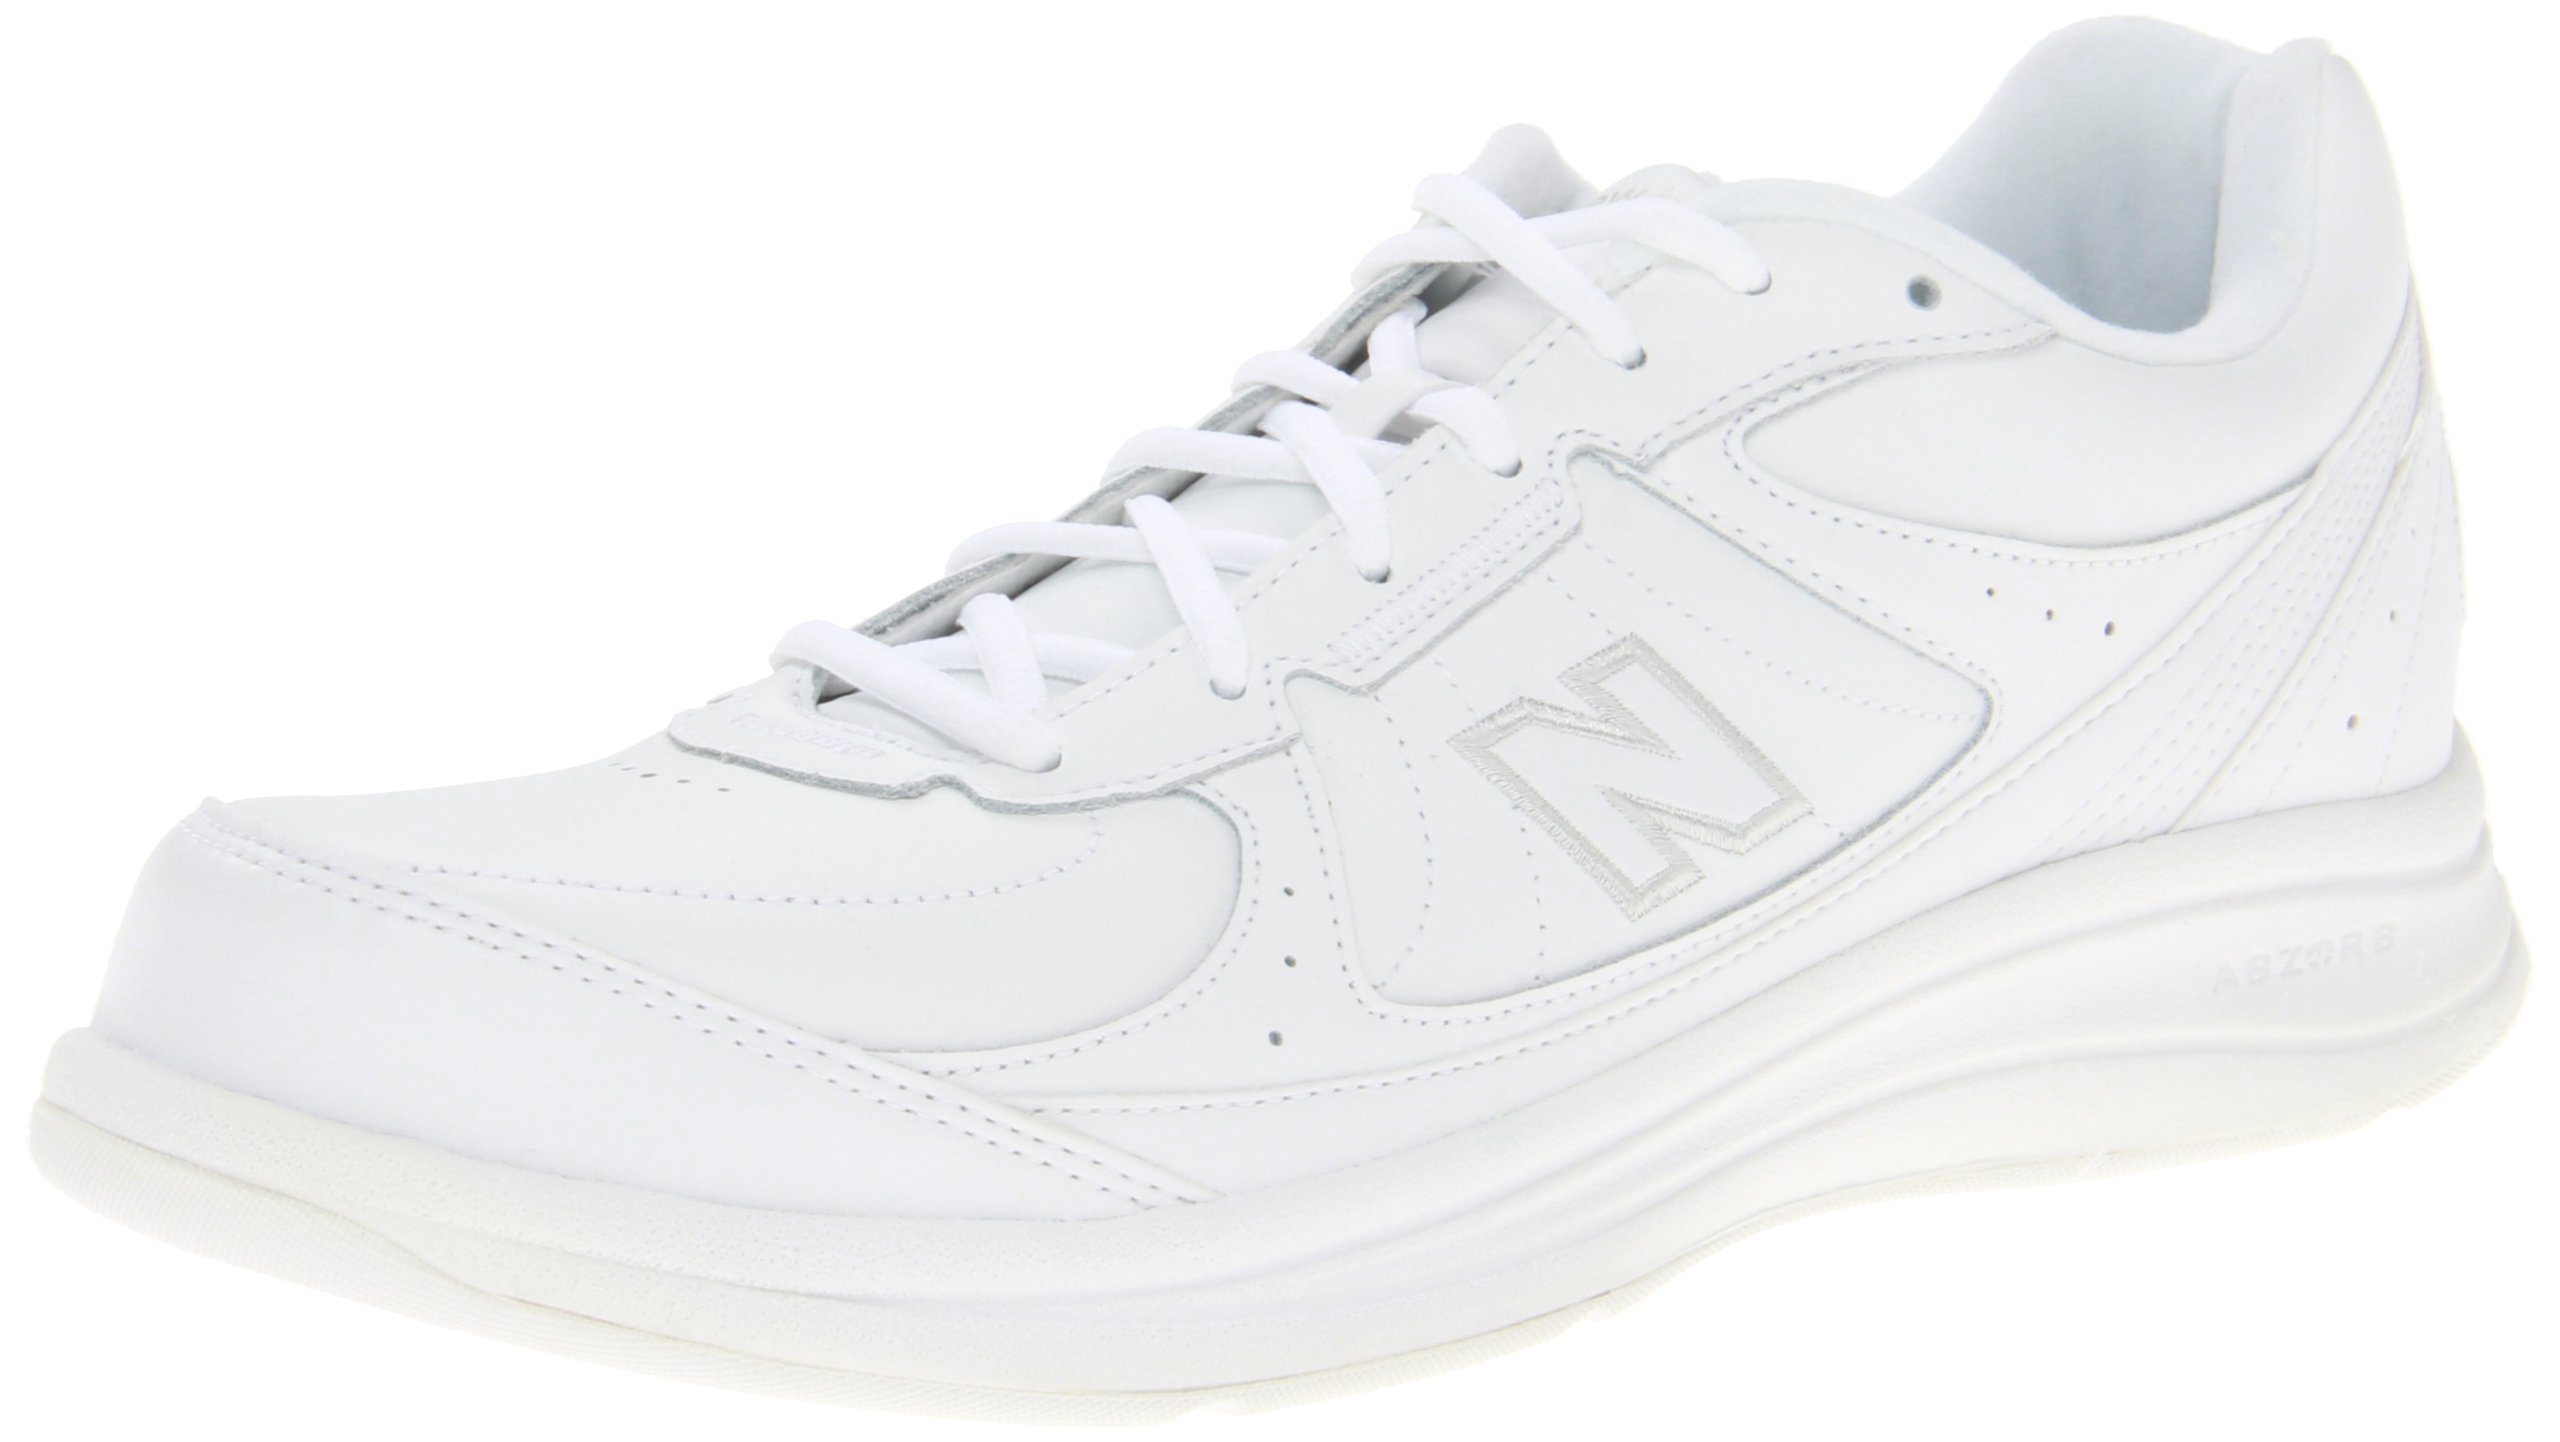 New Balance Men's MW577 White Walking Shoe - 10 D(M) US by New Balance